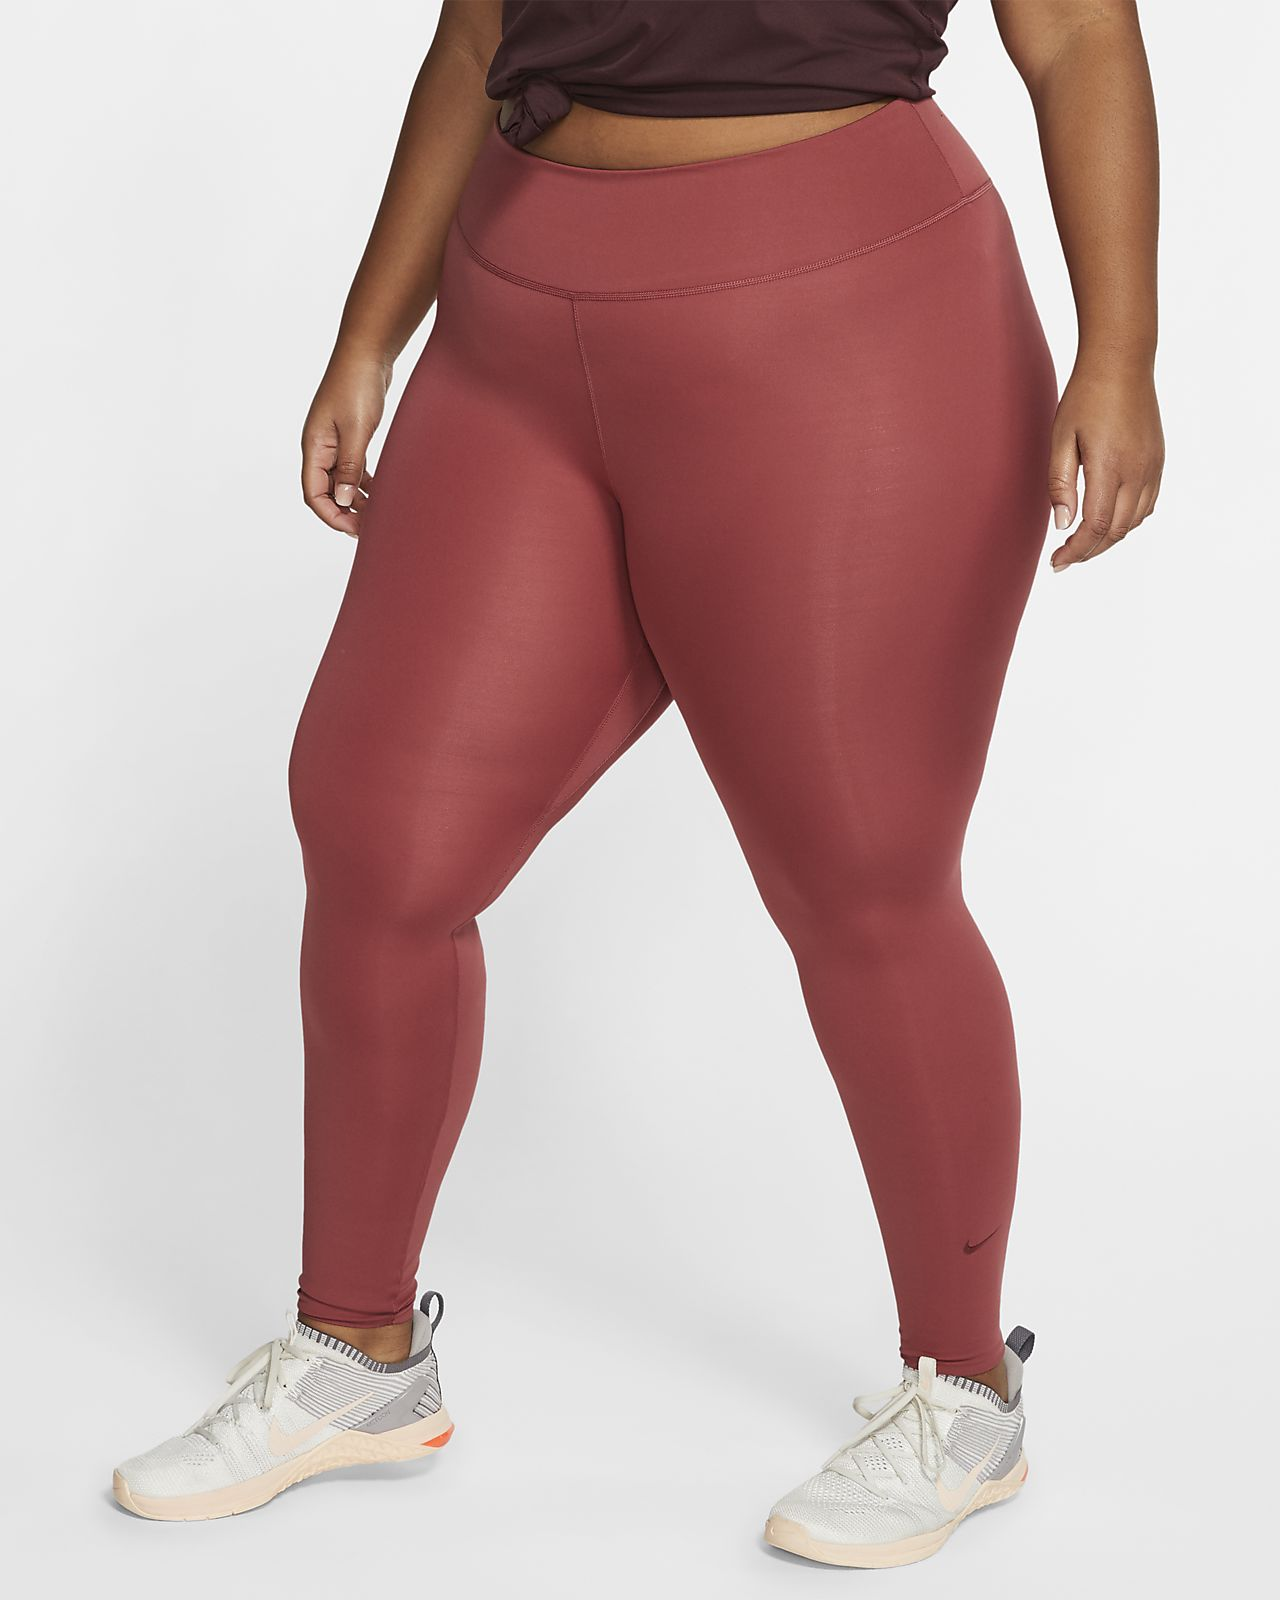 Nike One Luxe Damestights (grote maten)